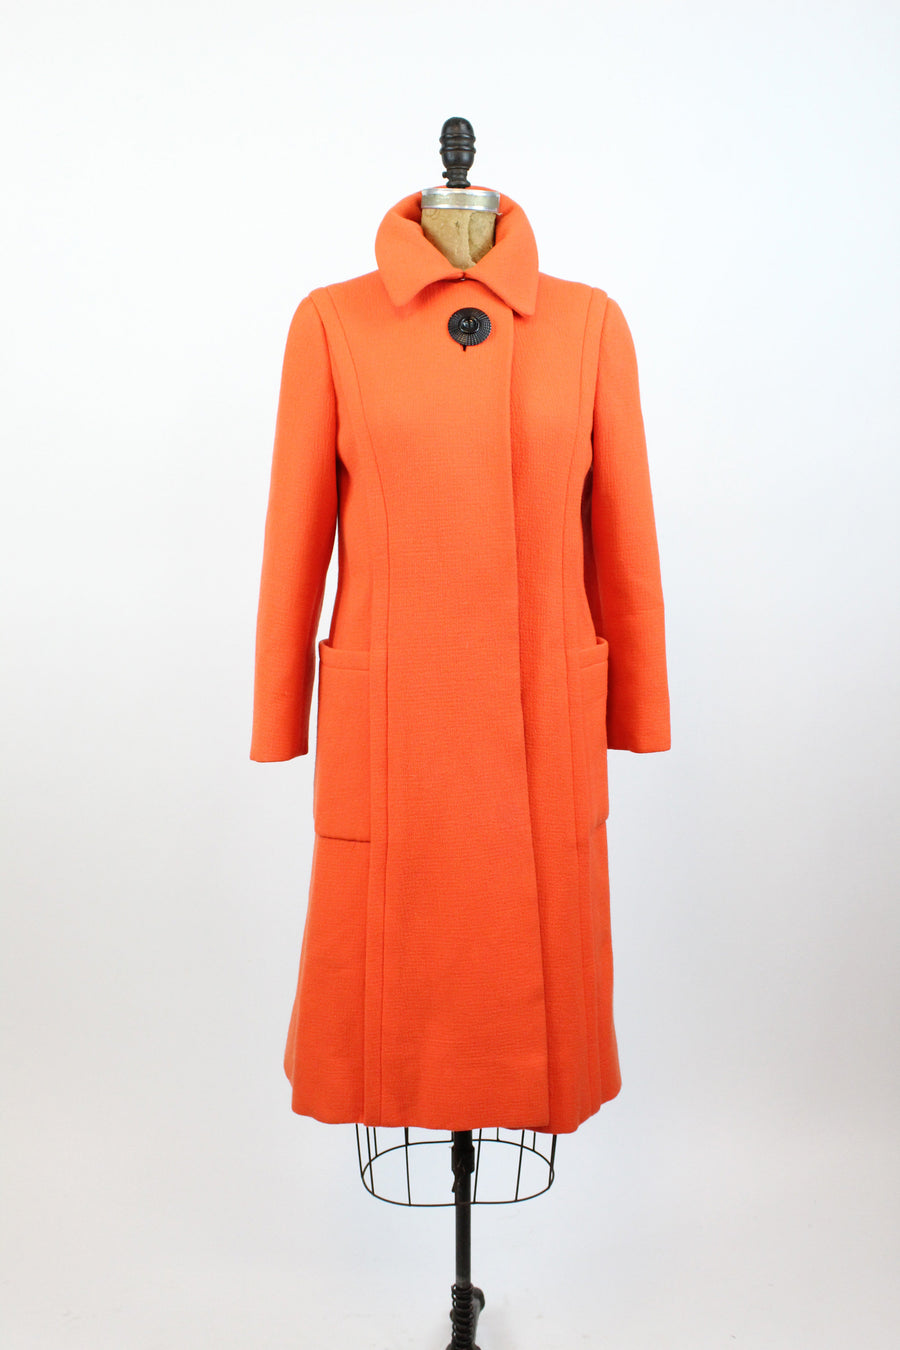 1960s Pauline Trigere orange wool coat small | vintage coat new in